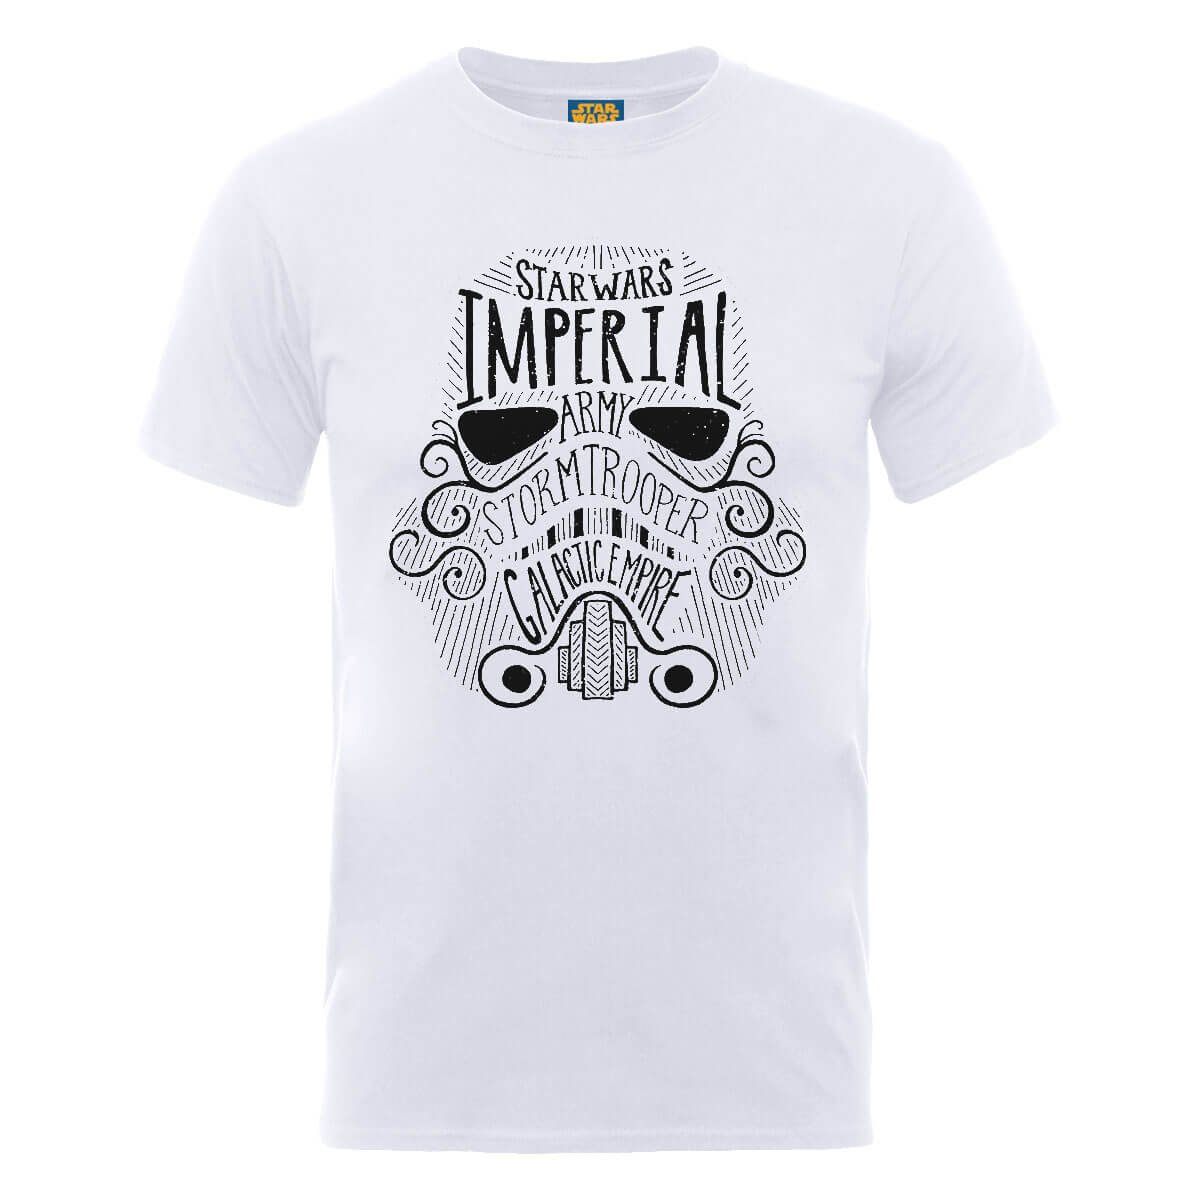 Star Wars Imperial Army Storm Trooper Galactic Empire T Shirt Circuit Board Tshirt Cool Geeky Technology Computer Mens White Clothing Zavvi Us